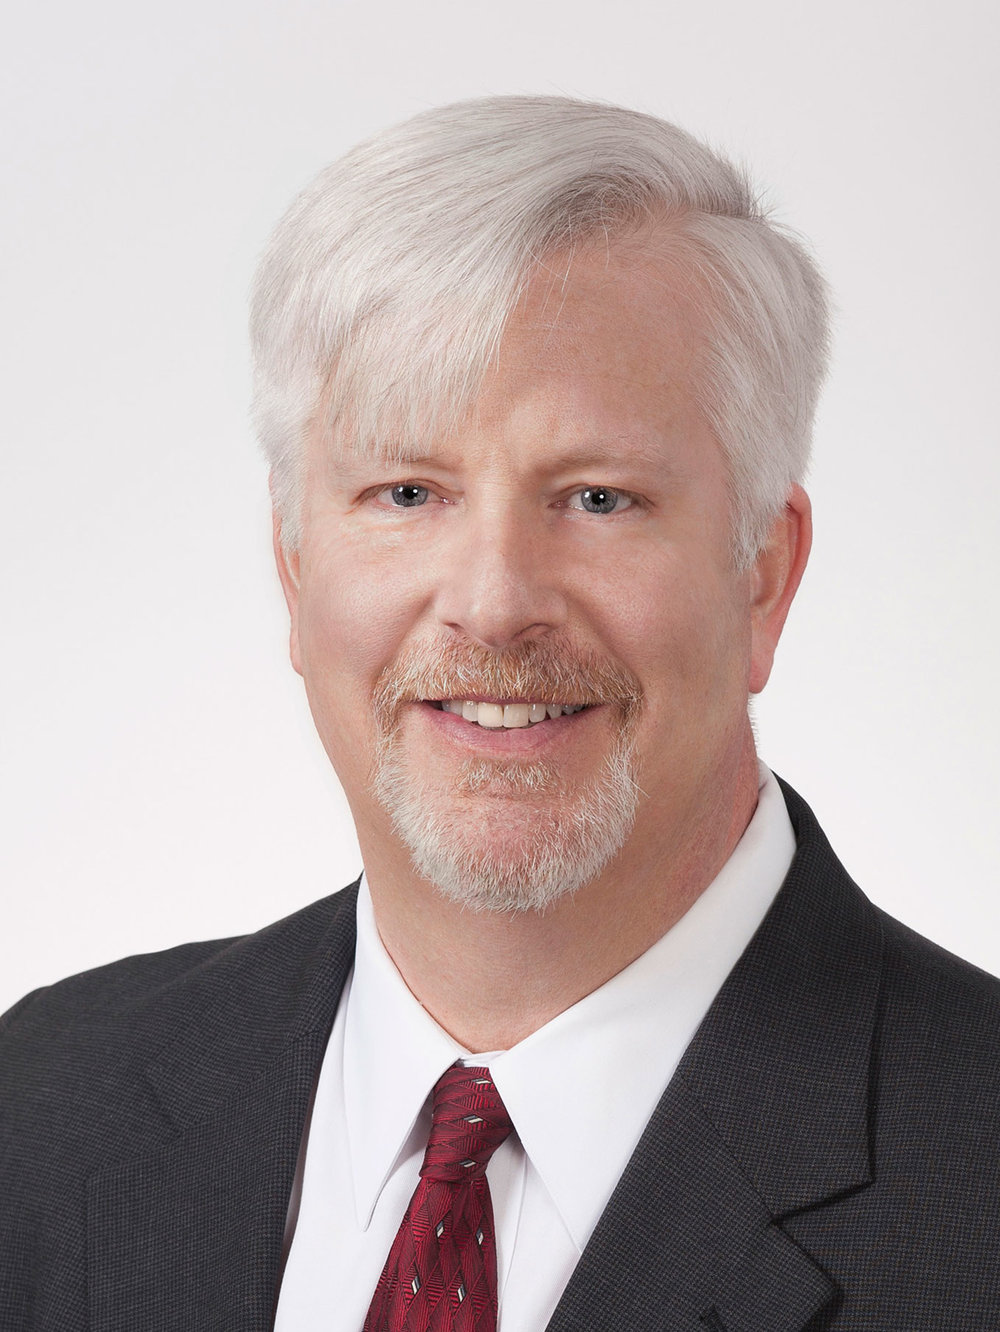 P. Arthur Huprich, CMT, Chief Market Technician for Day Hagan Asset Management in Sarasota, FL.